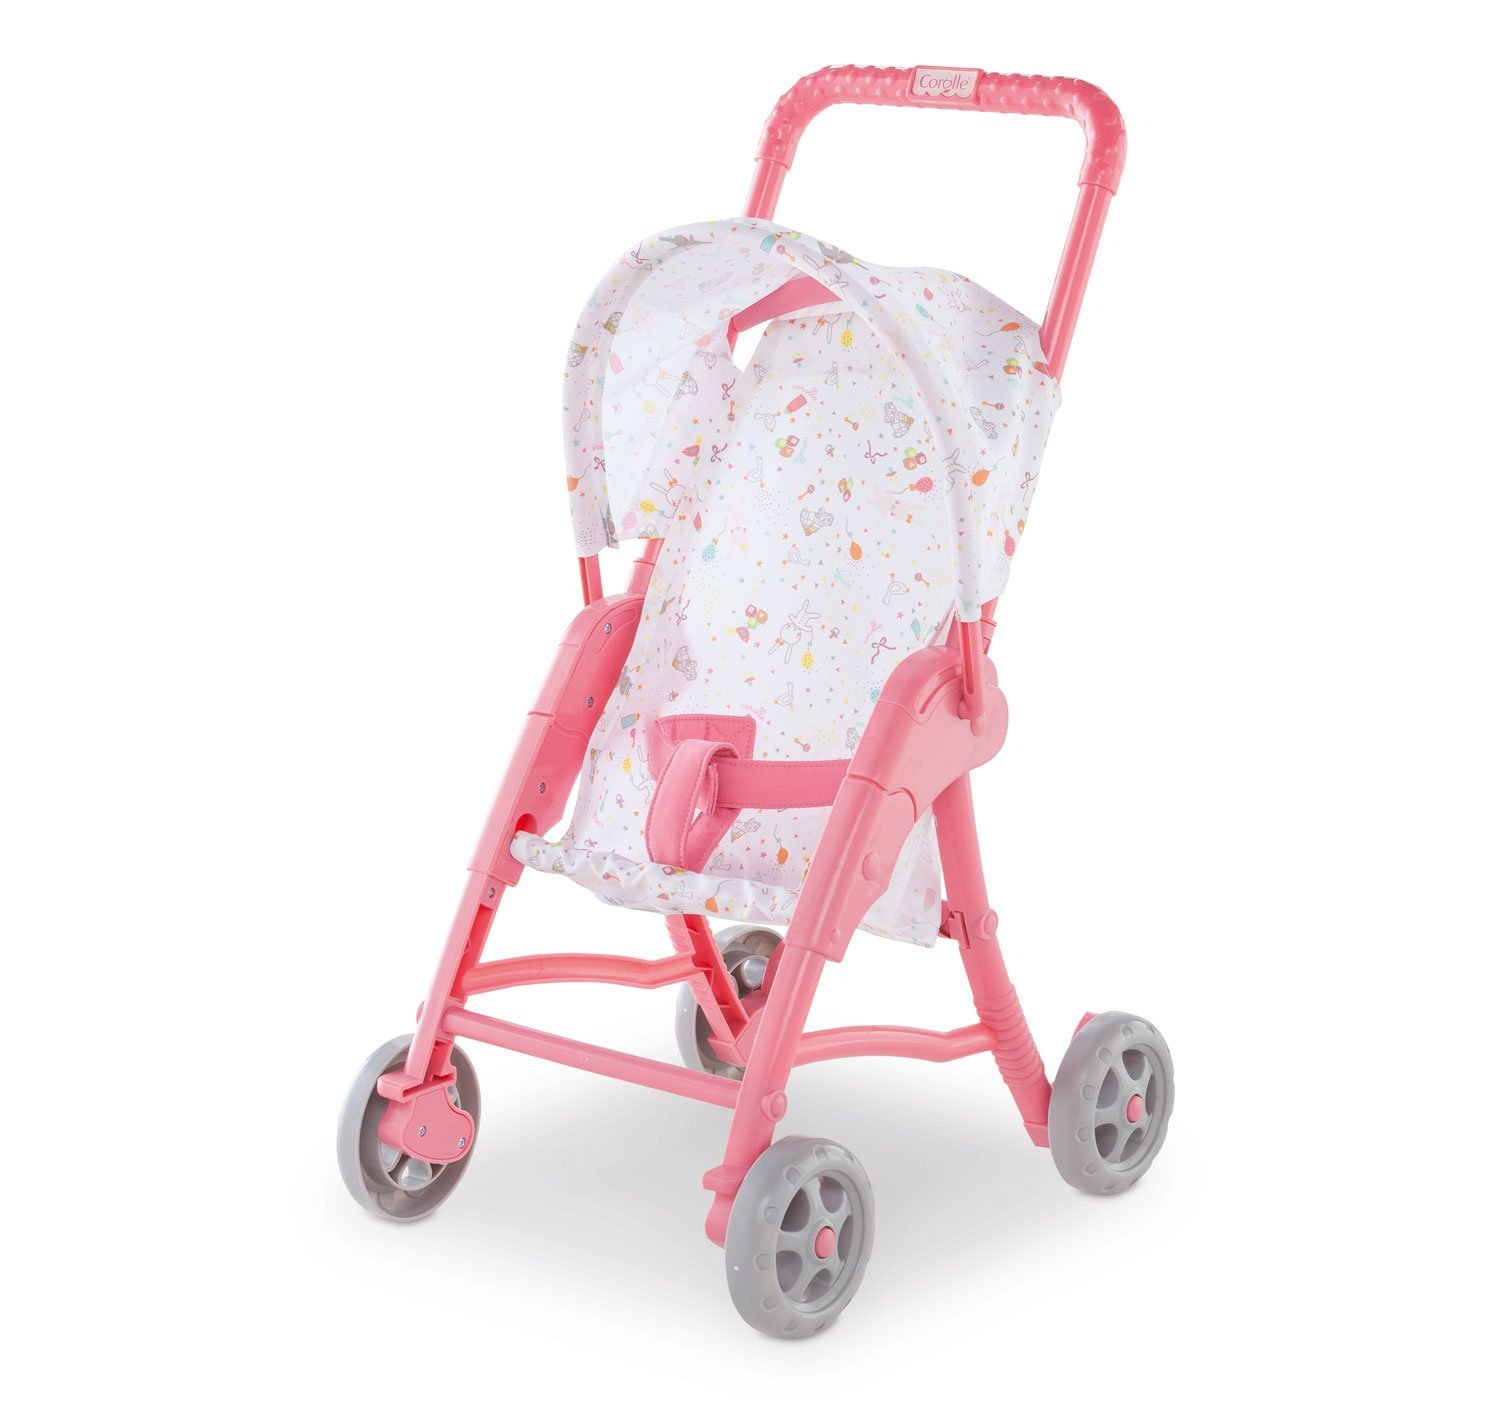 Mon Premier Stroller, Everything little ones need to take care of their baby doll By Corolle